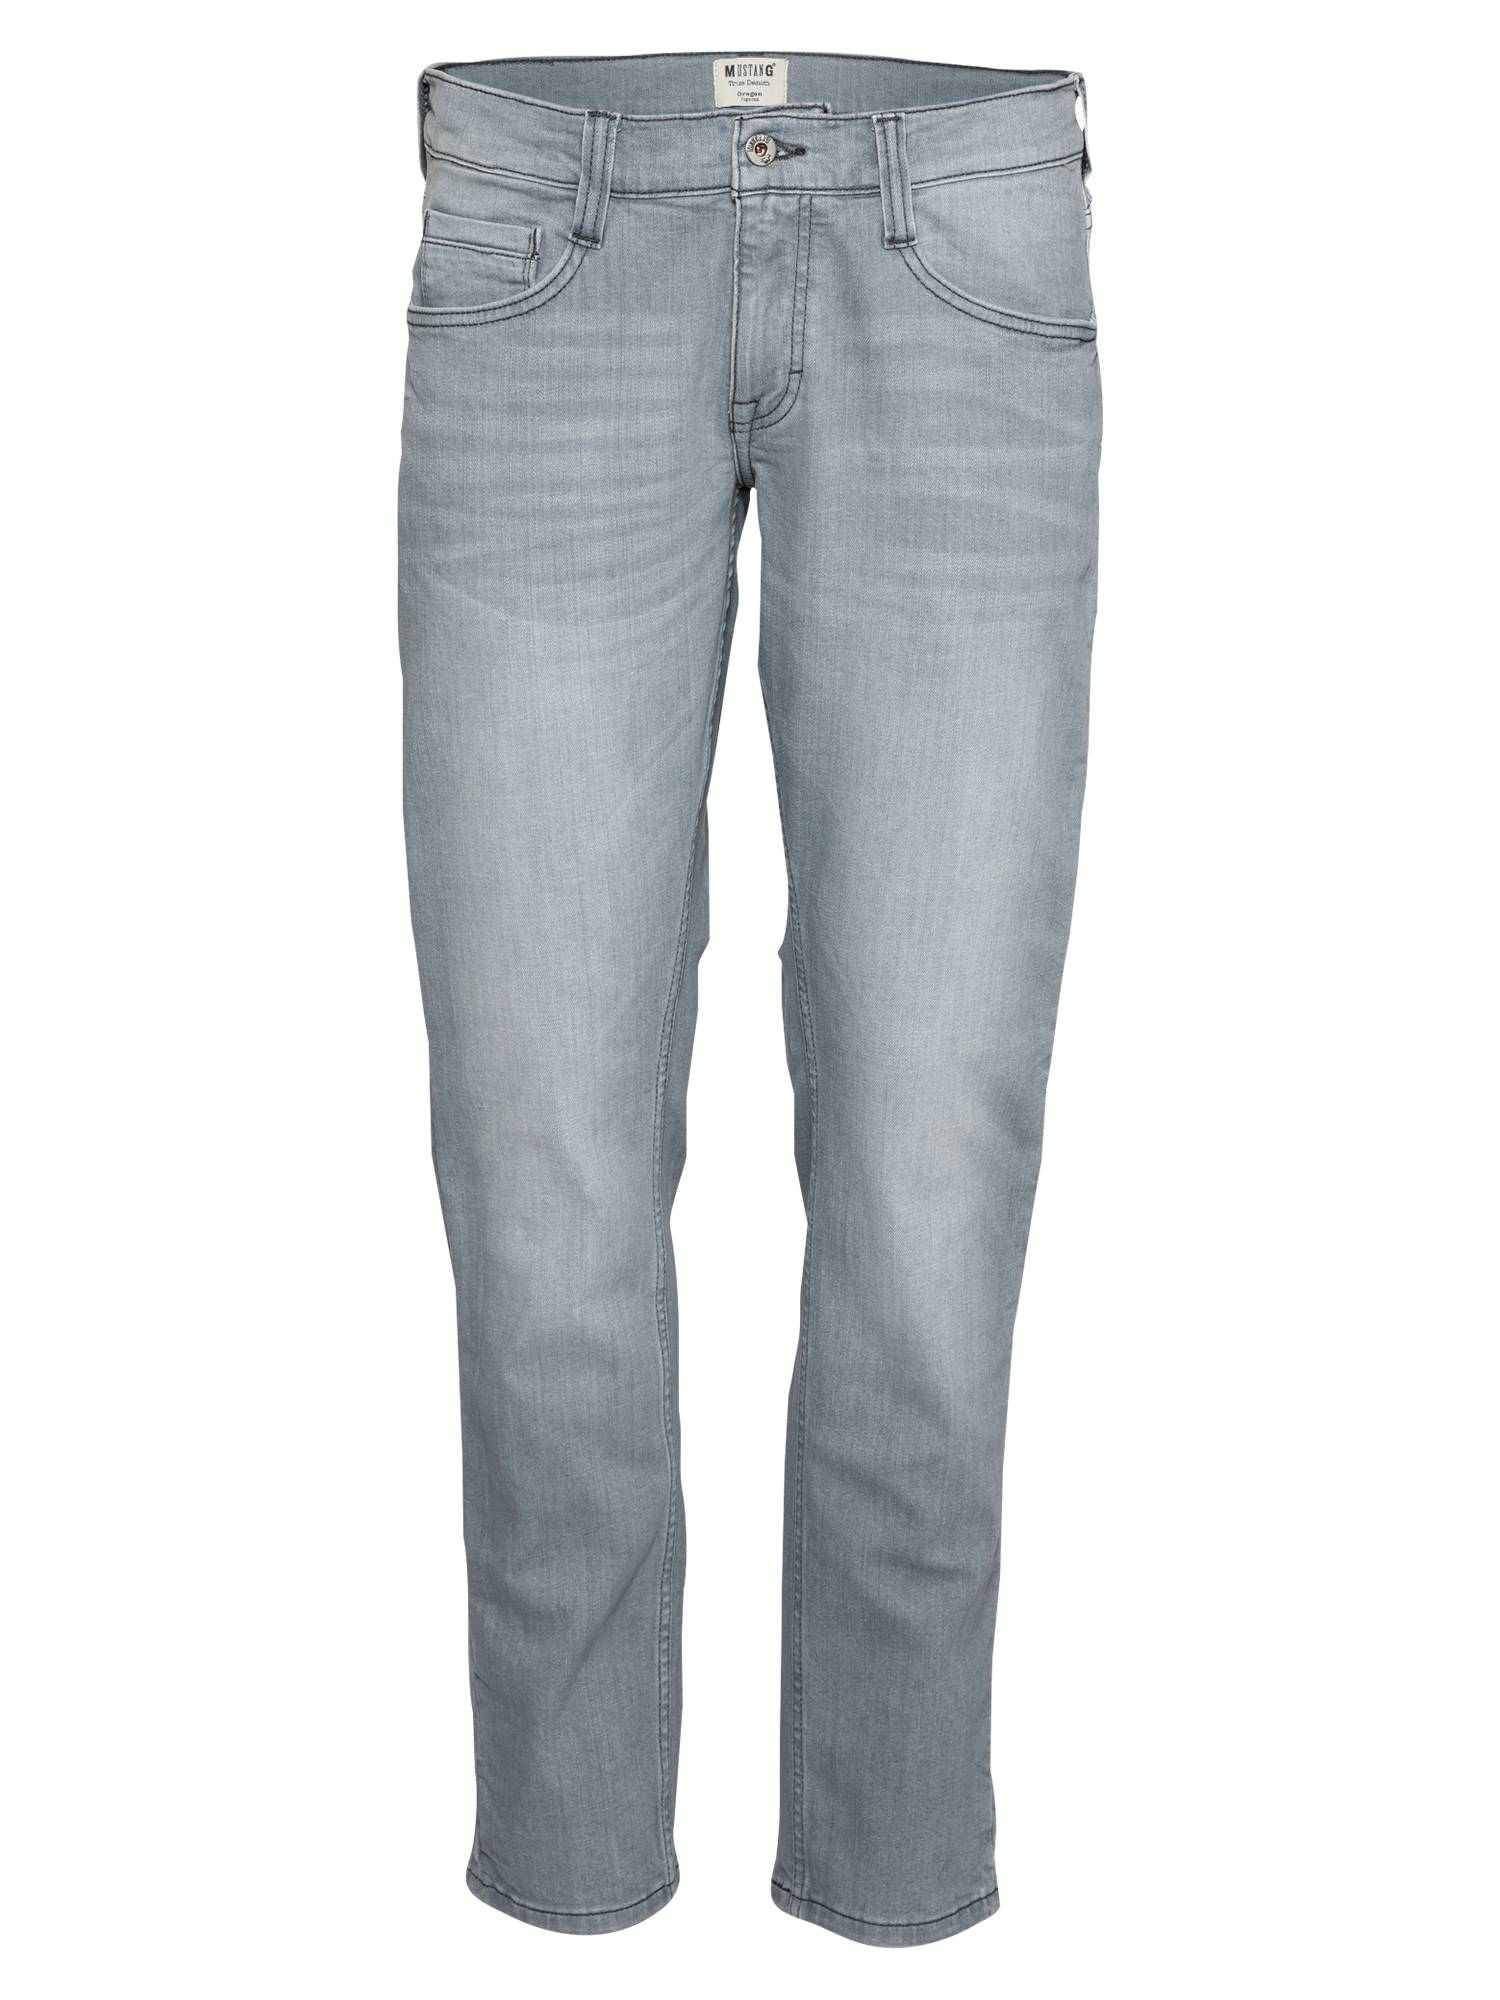 MUSTANG Jean 'Oregon'  - Gris - Taille: 30/34 - male